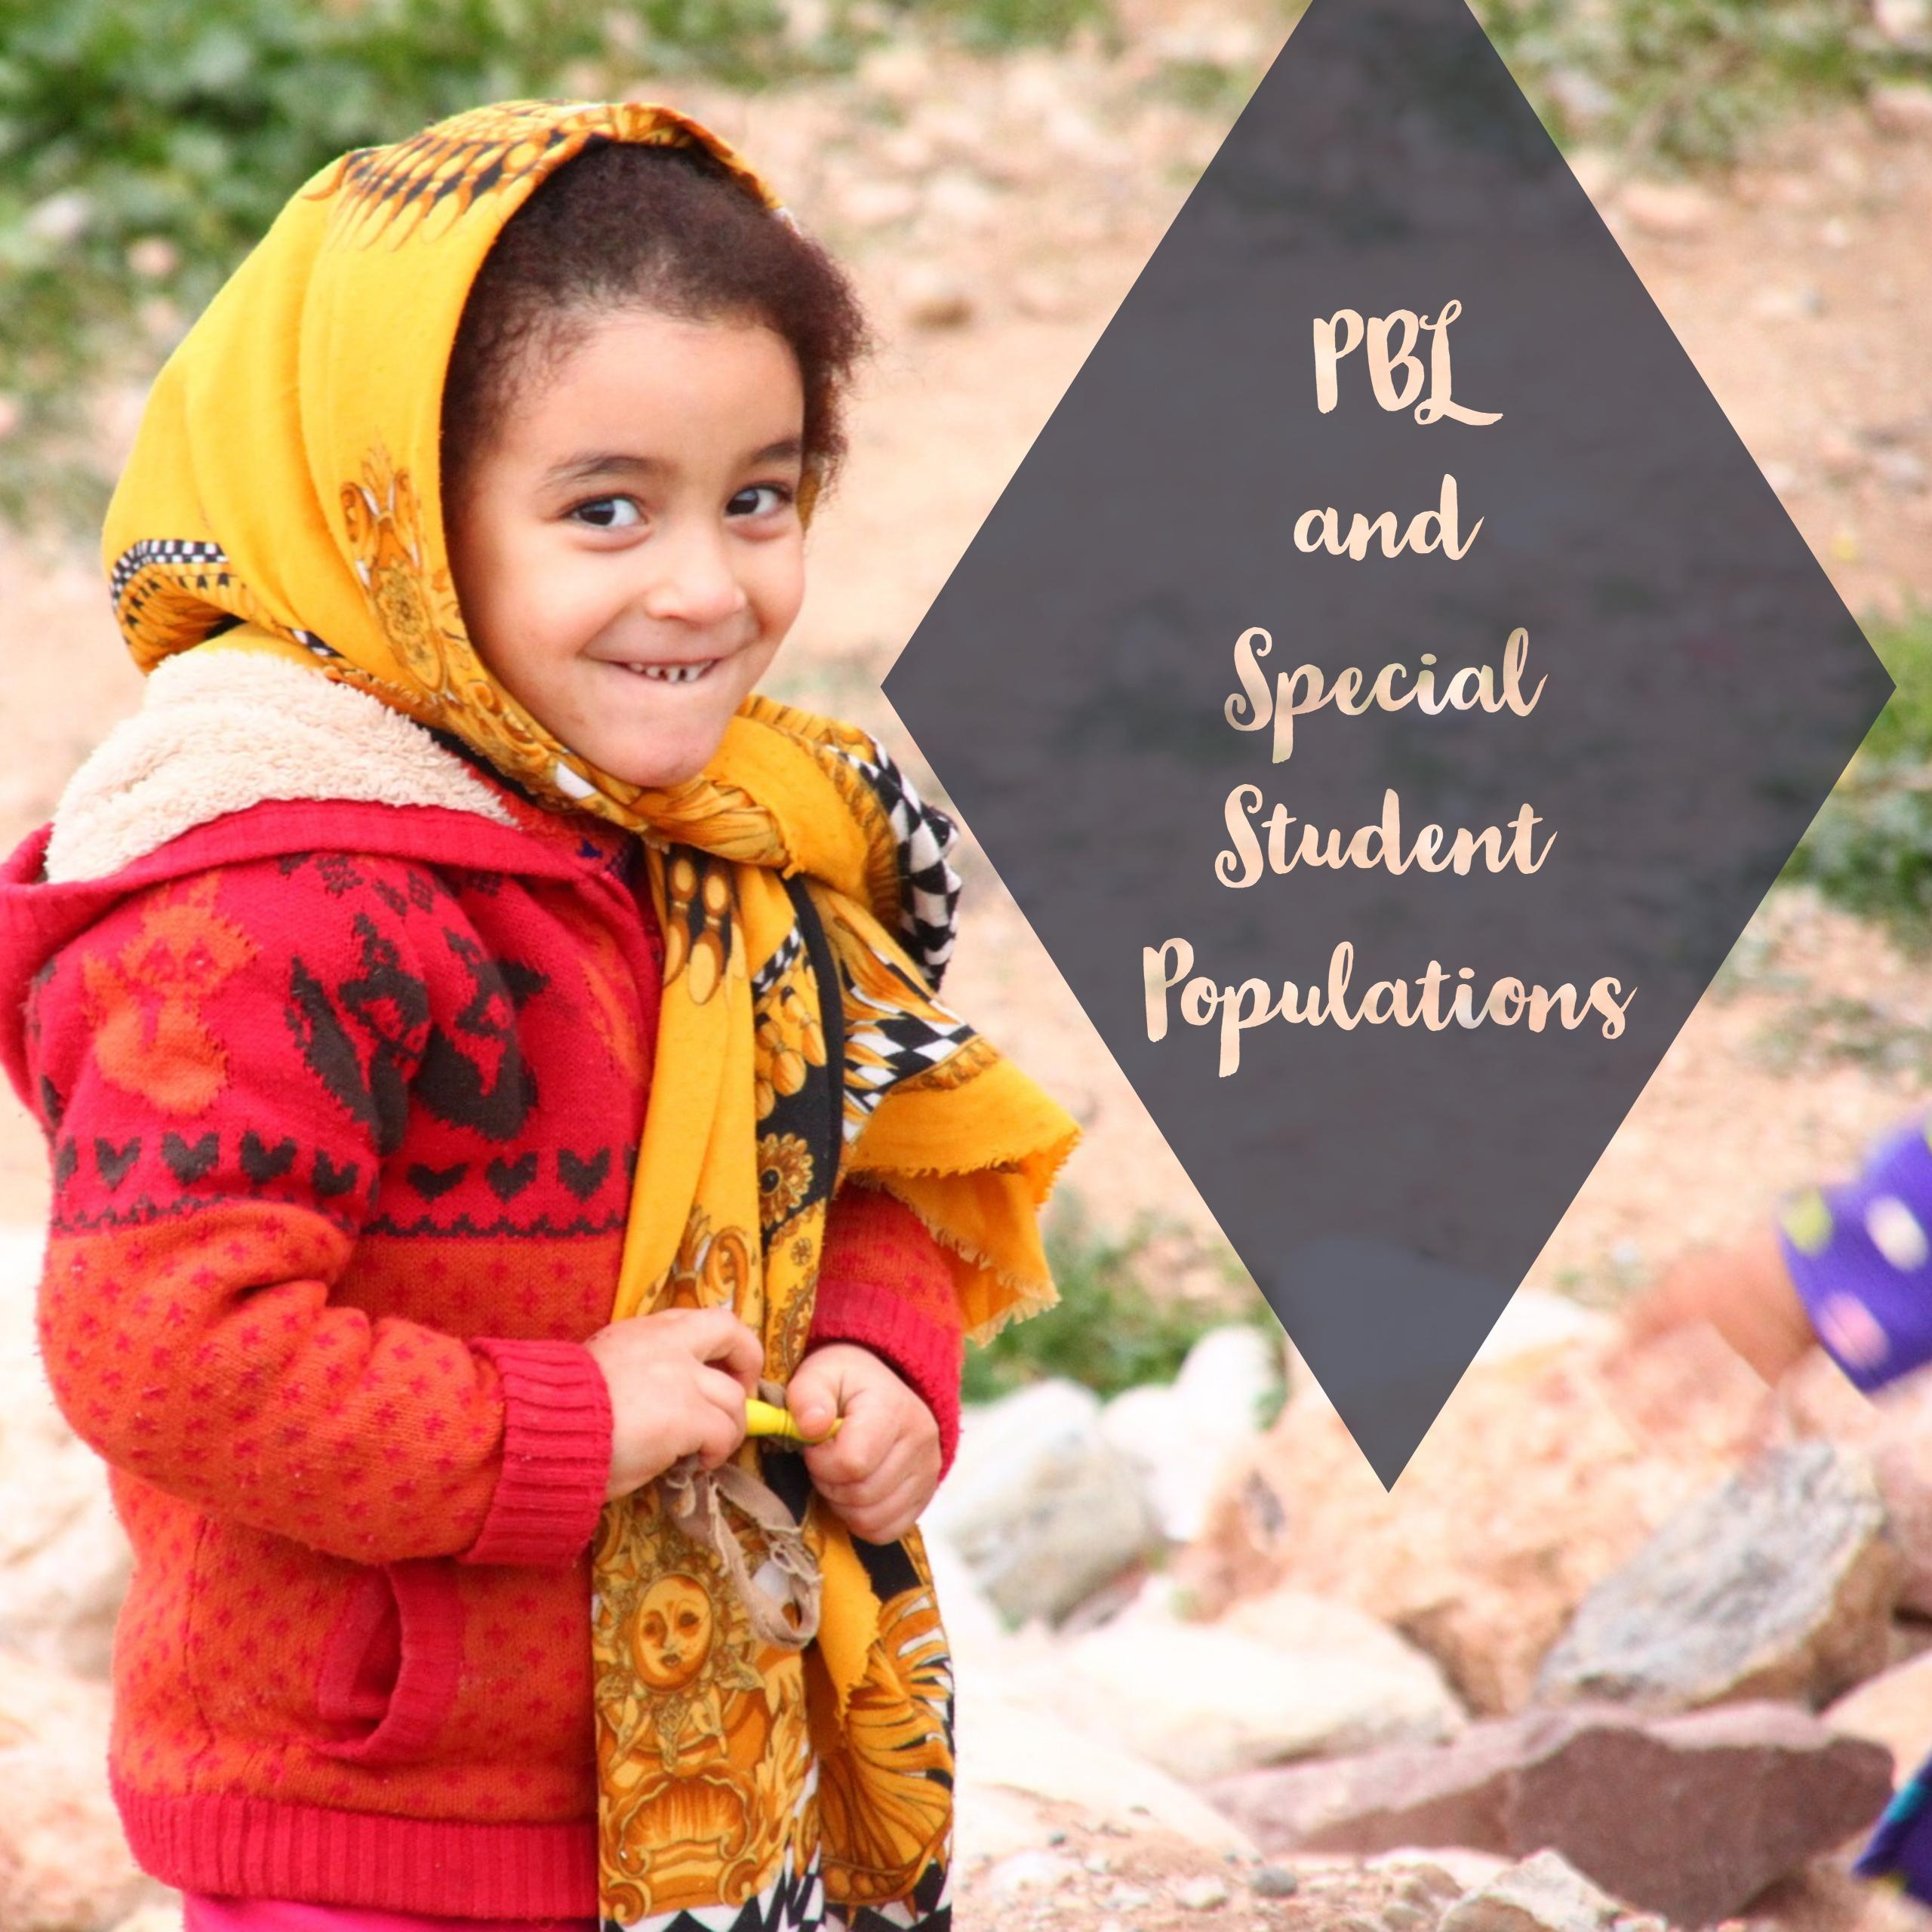 PBL and Special Student Populations